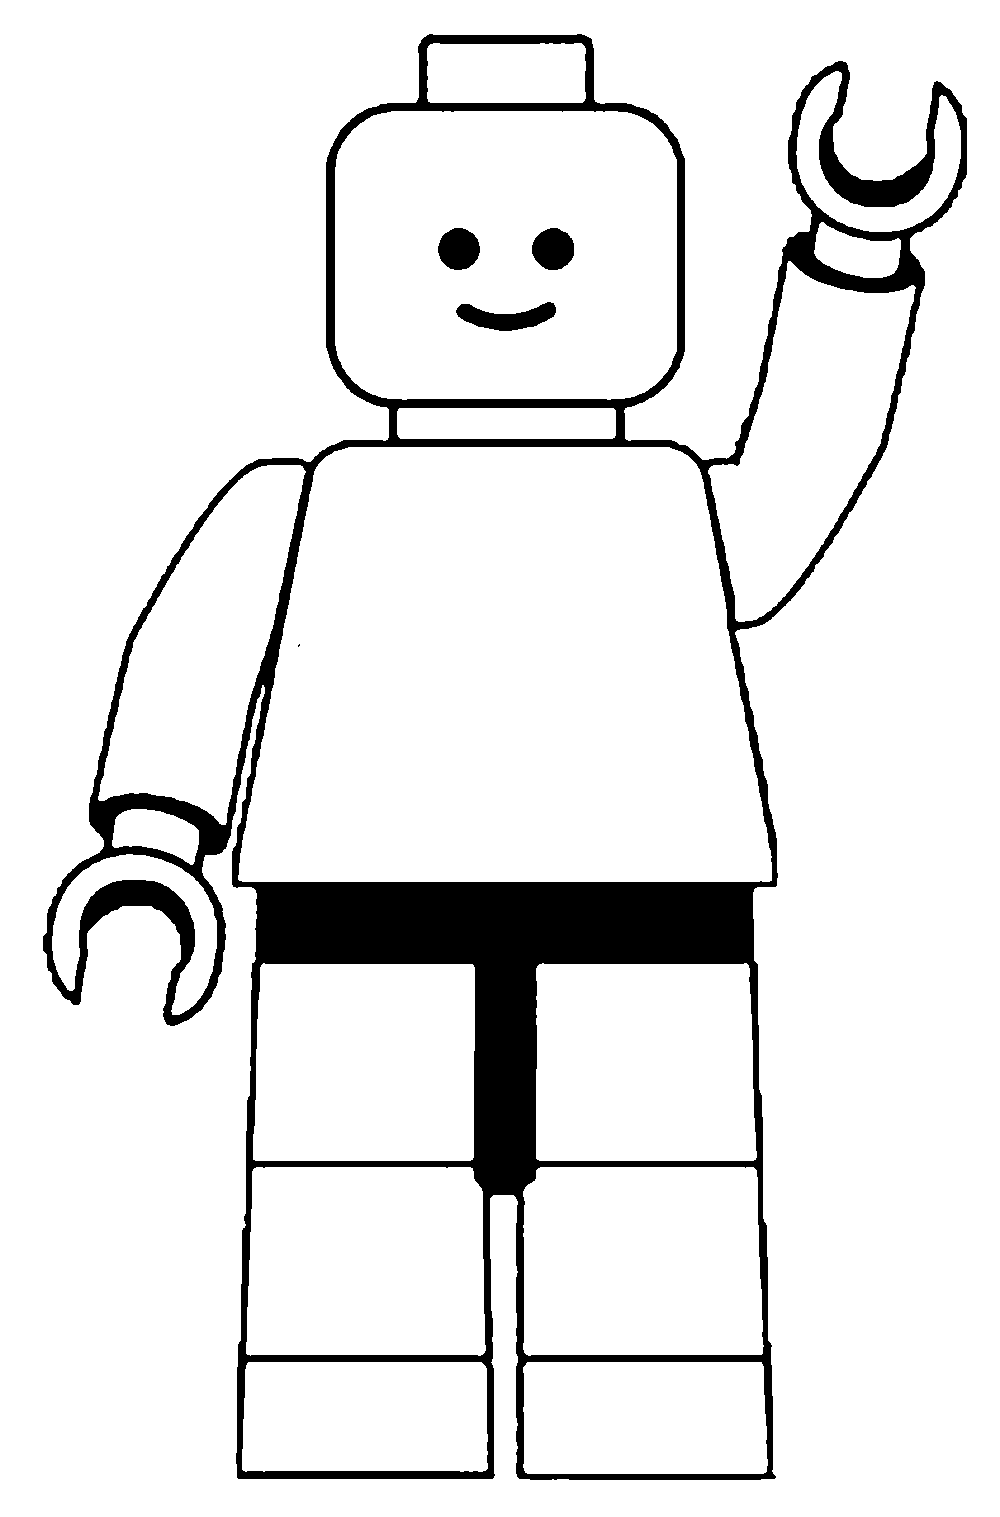 Lego character clipart black and white jpg download Lego character clipart black and white - ClipartFest jpg download